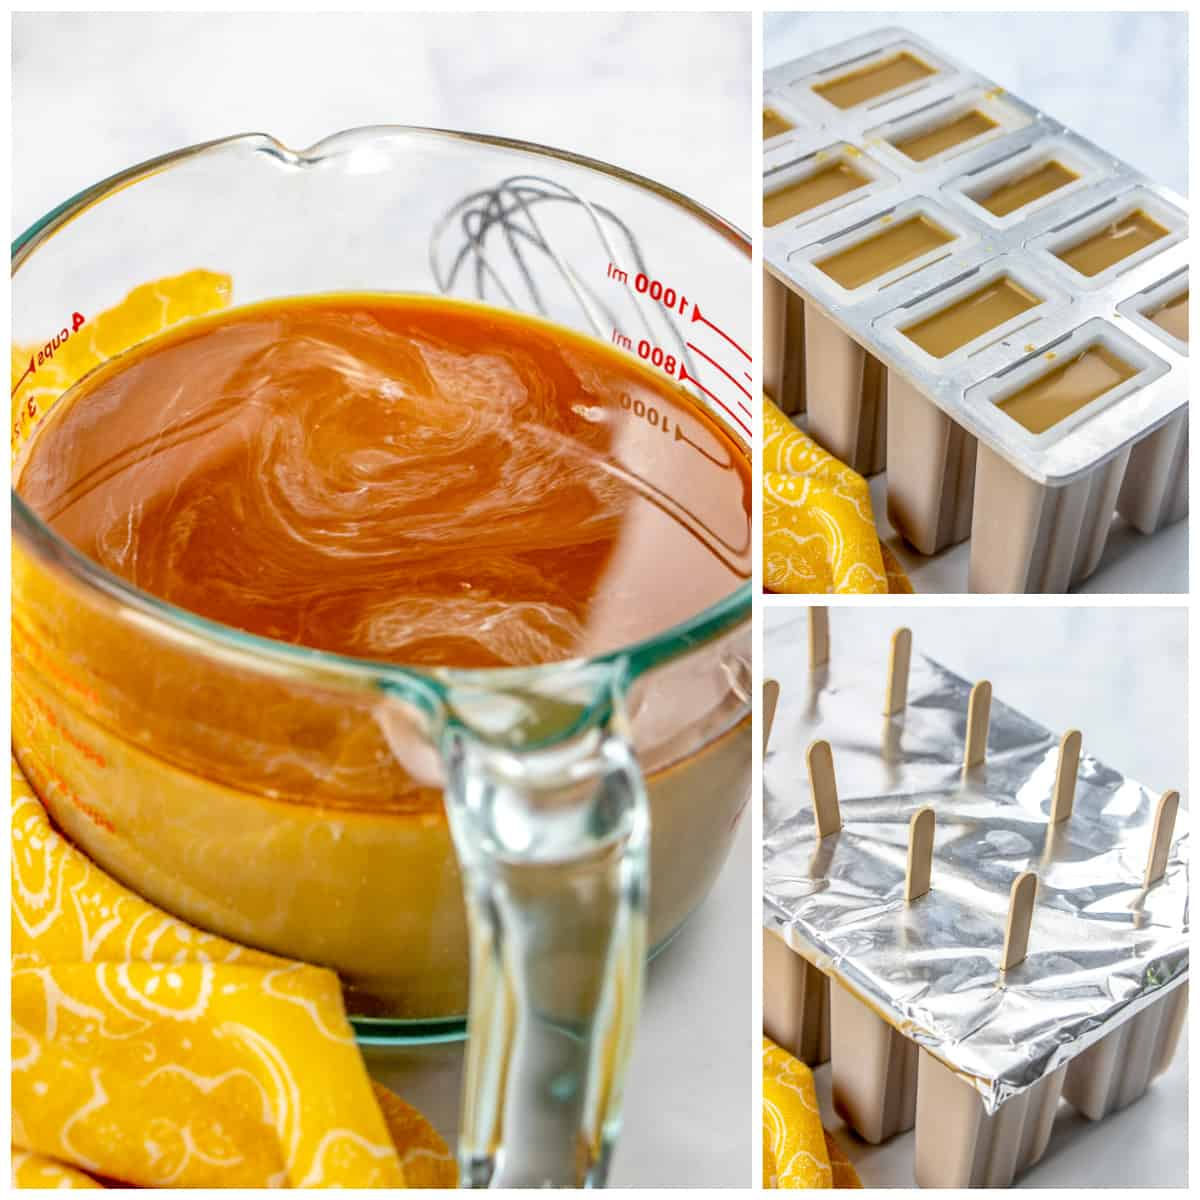 Step by step photos on how to make Coffee Popsicles